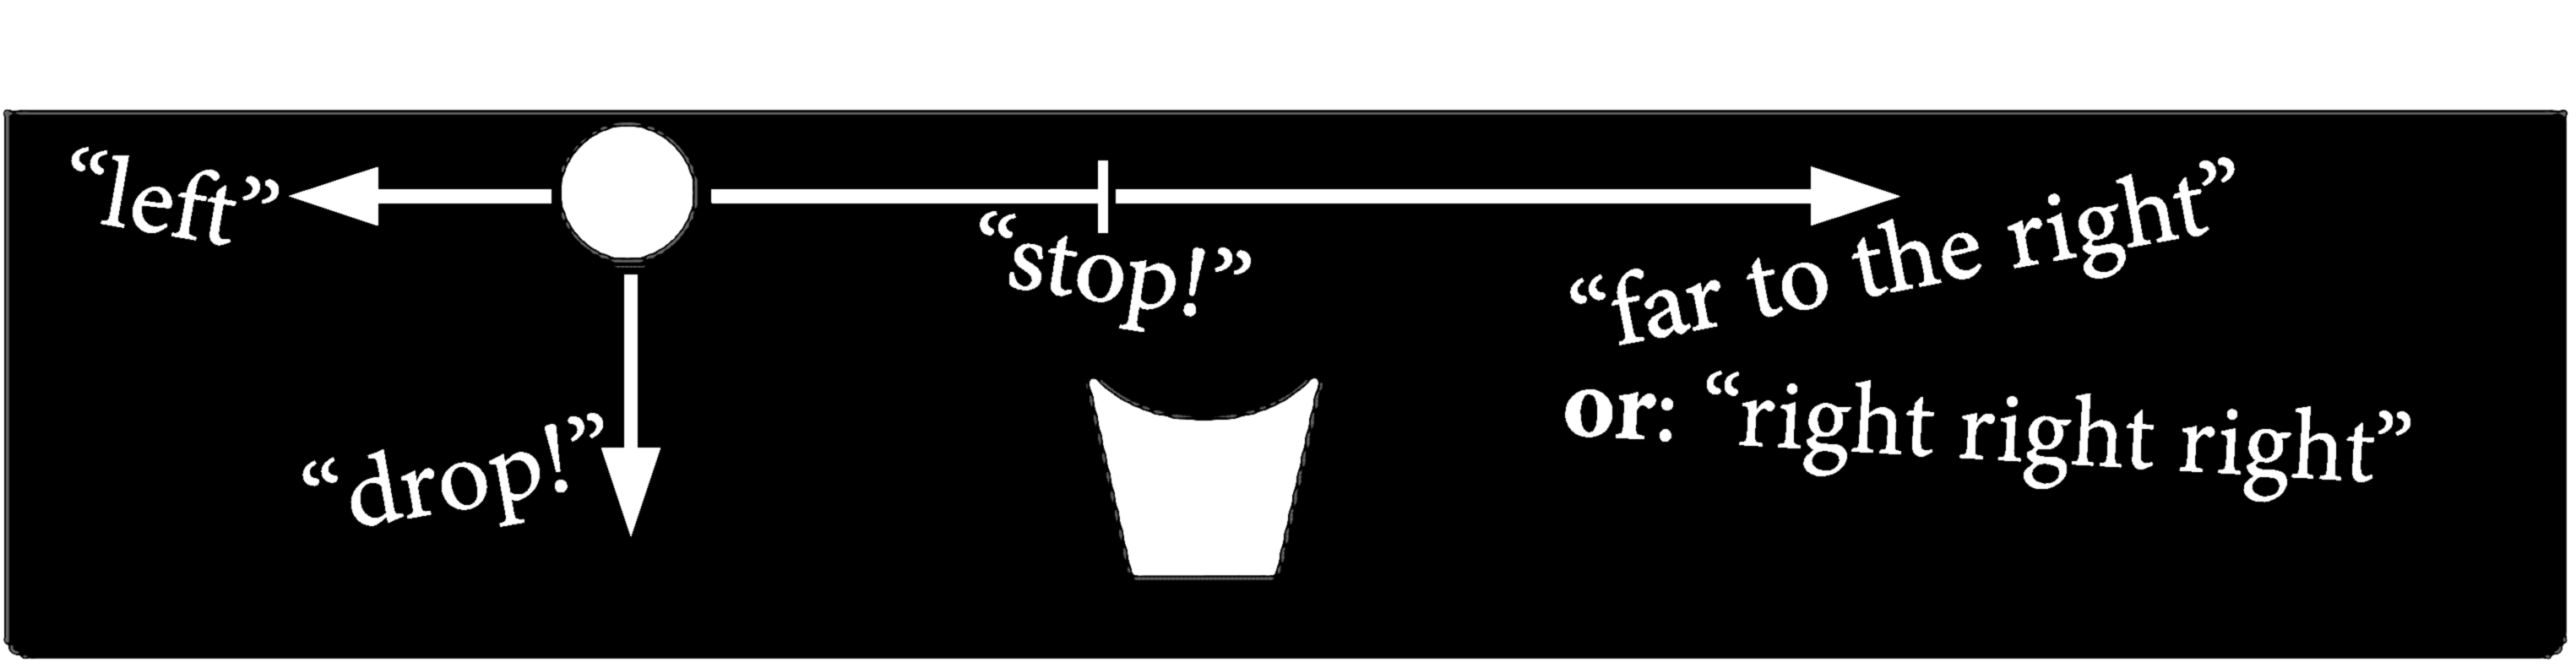 5 Incremental Speech Recognition Figure 5.15: The Greifarm incremental command-and-control task with a few commands (in quotation marks) and their respective effects (shown as arrows).